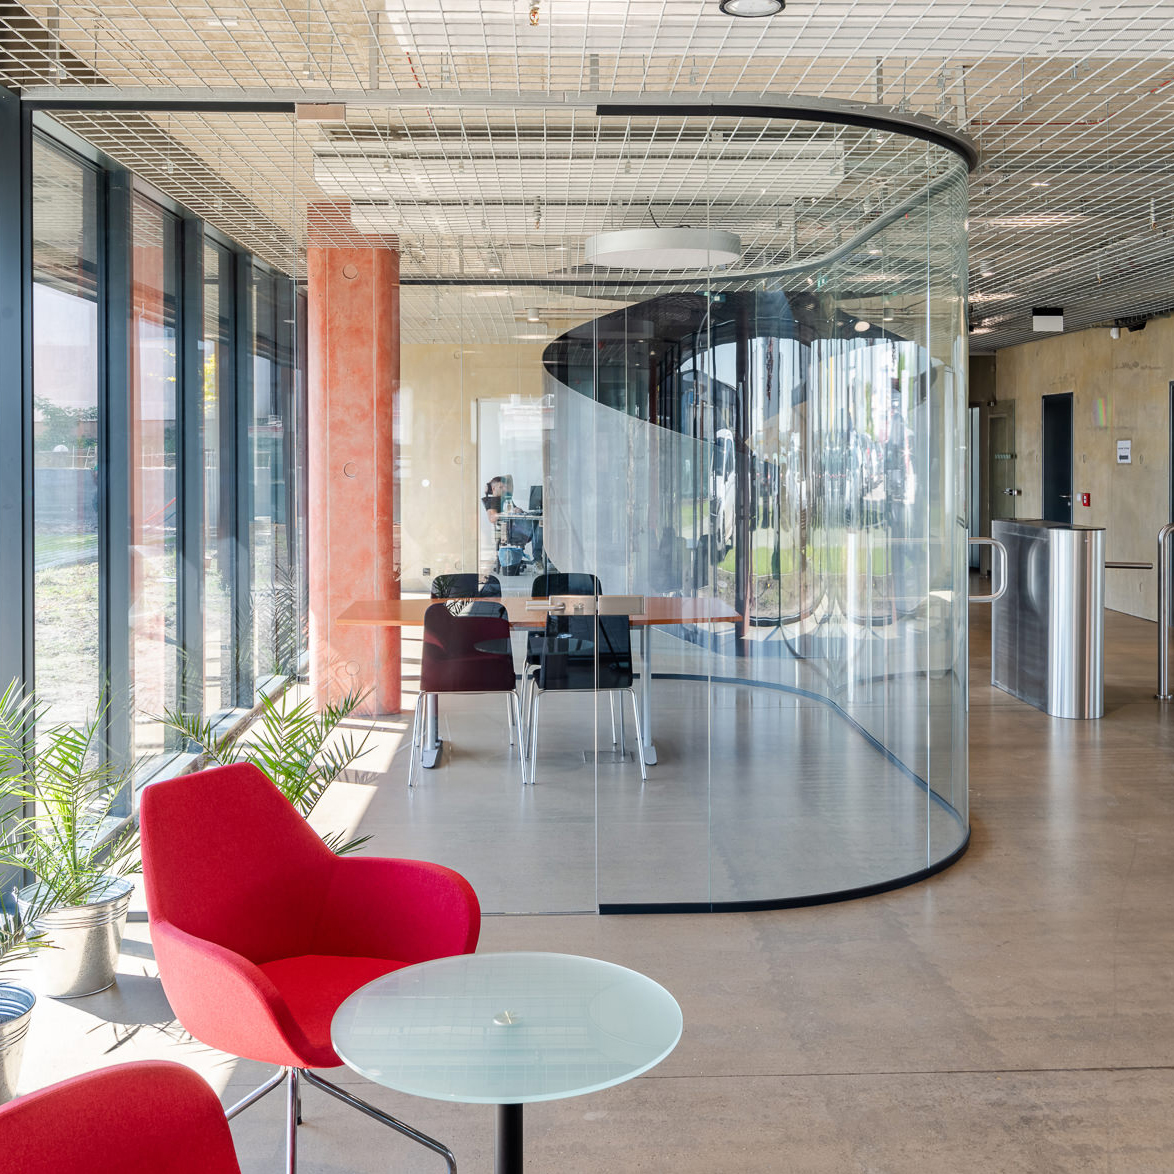 Curved glazed partitions